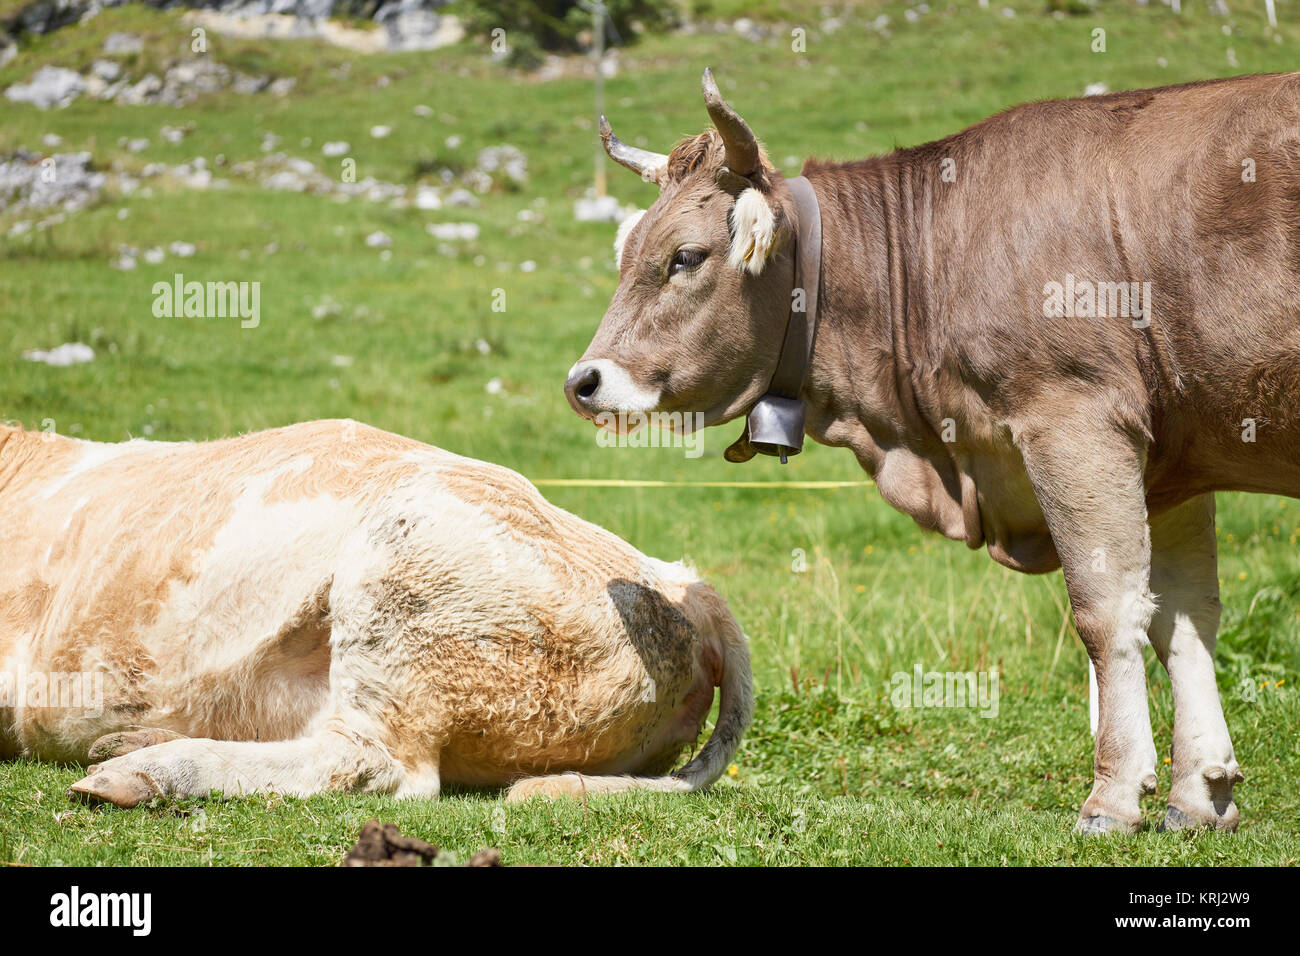 Brown Swiss Cow Stock Photos & Brown Swiss Cow Stock ...